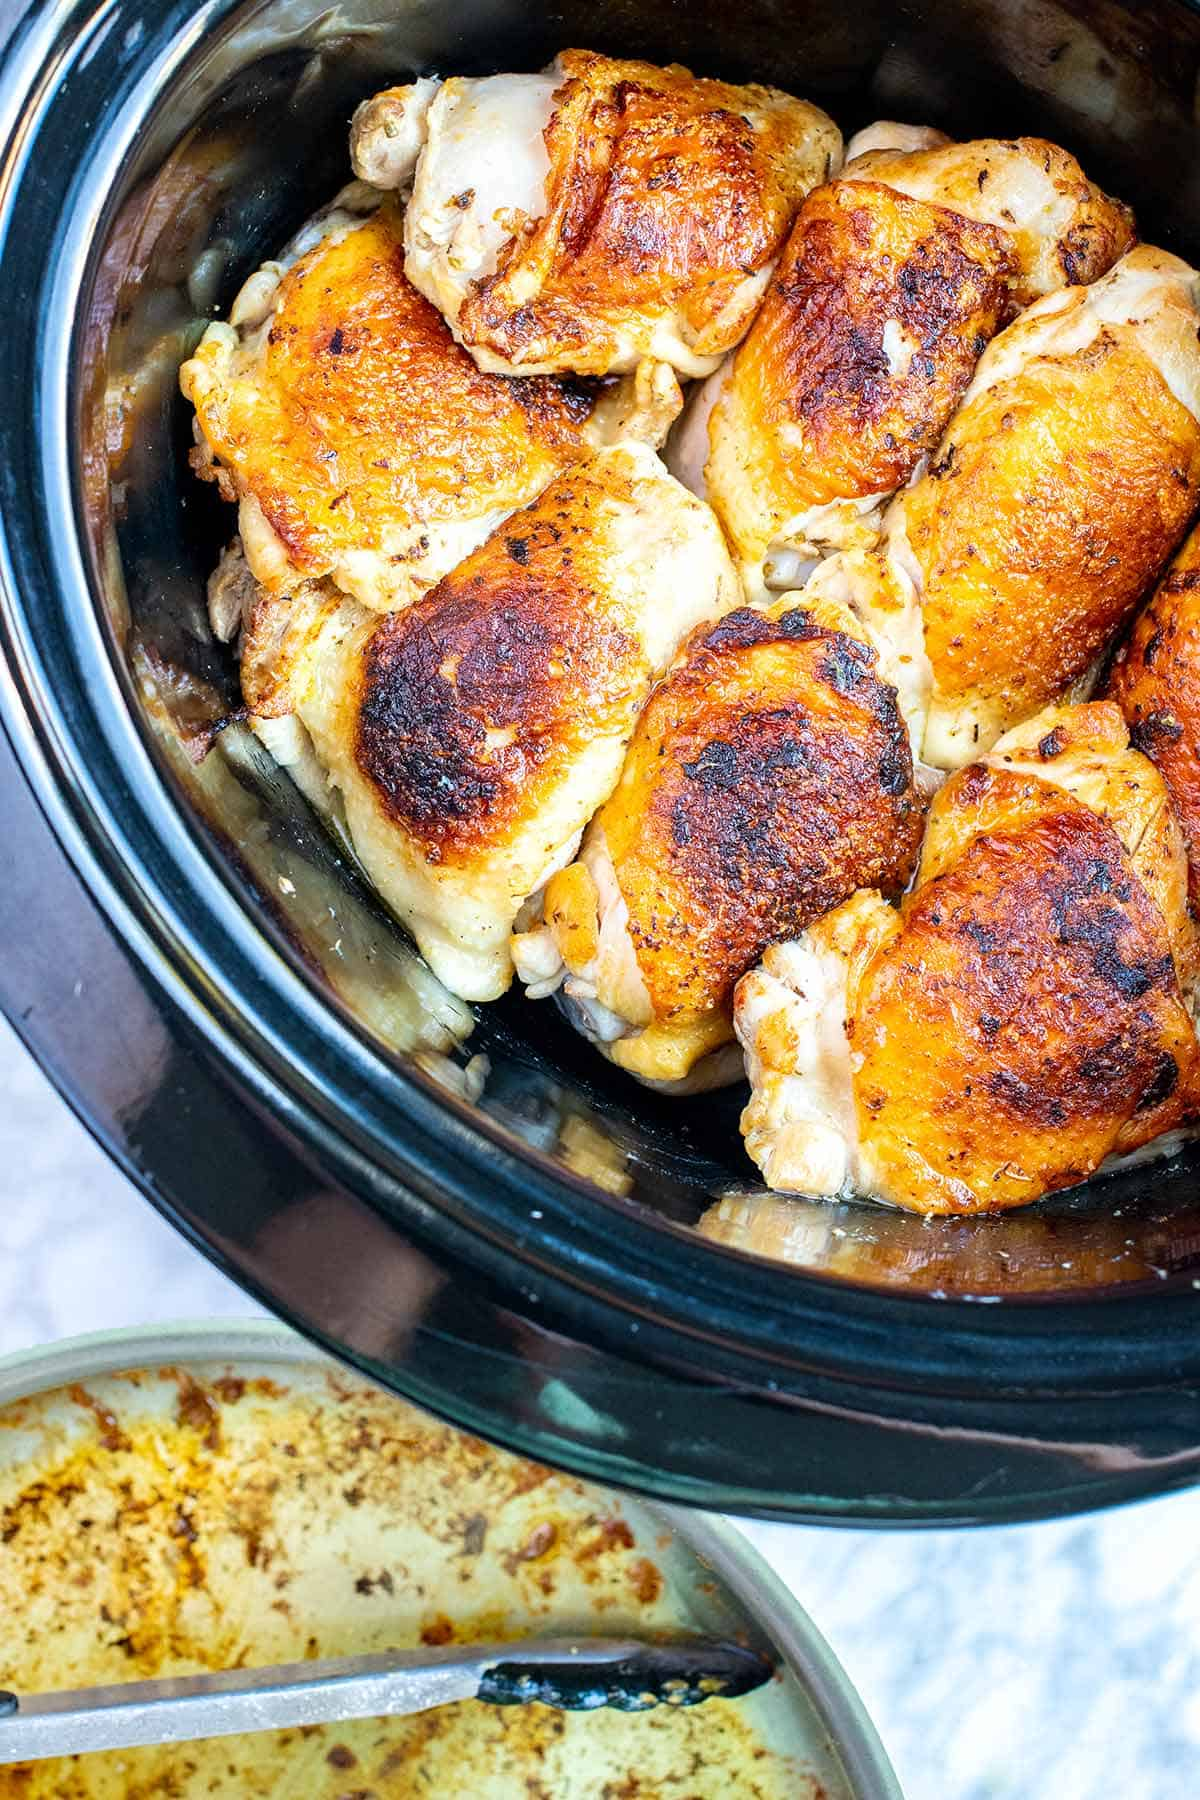 For the best slow cooker chicken thighs, brown the skin in a skillet first, and then add to the slow cooker. No additional liquid is required.